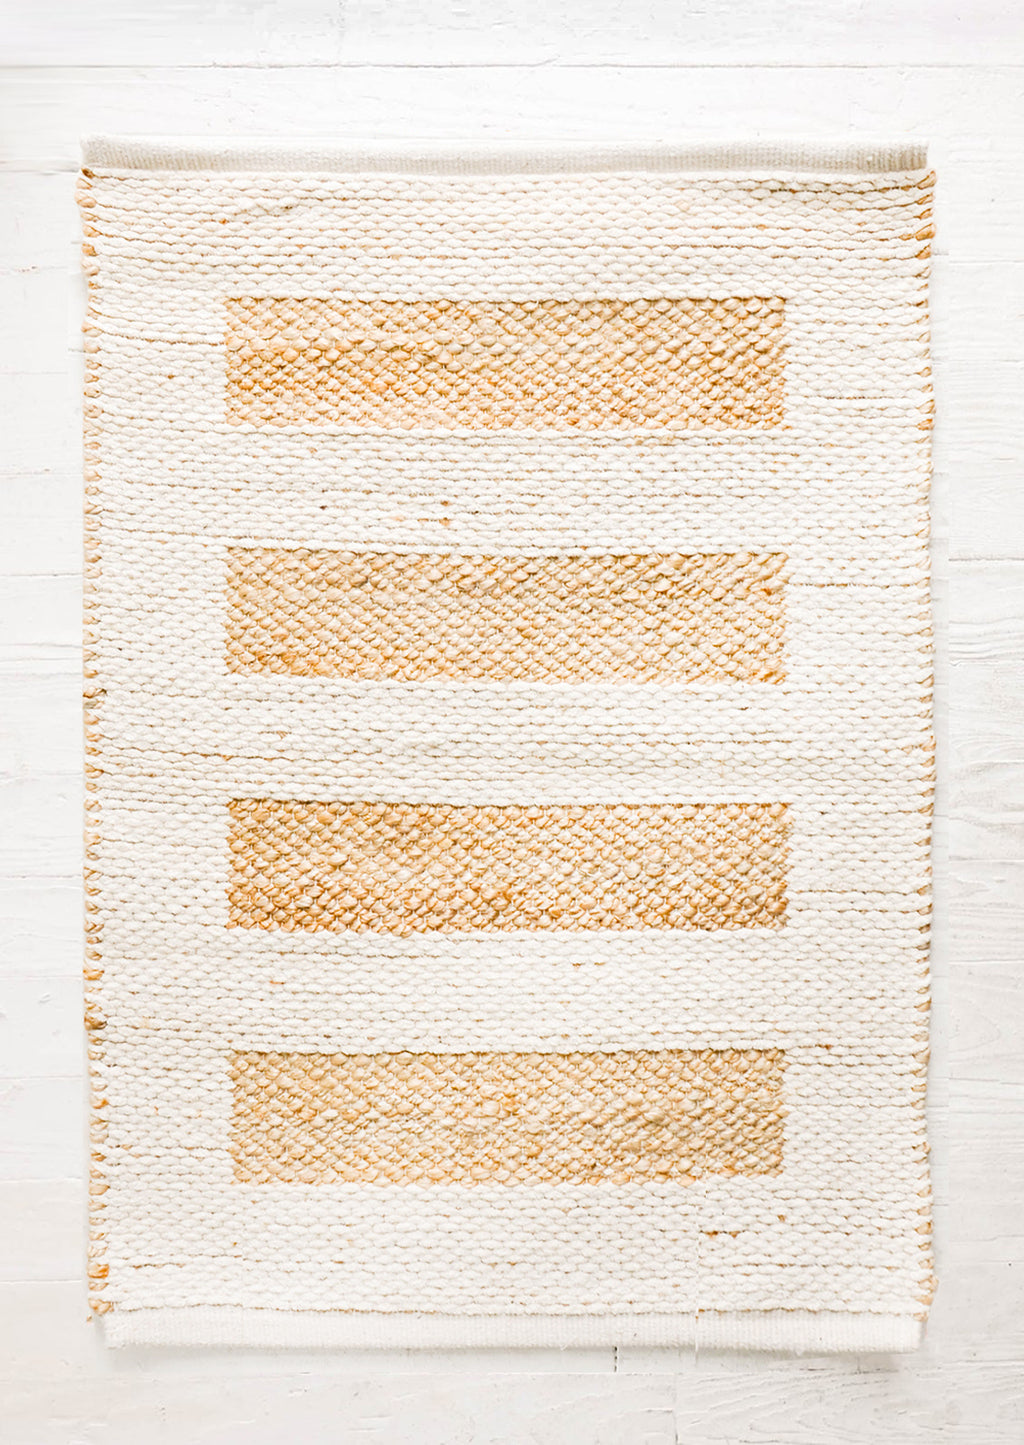 1: Rug in ivory cotton with contrasting bar stripe pattern in natural jute.